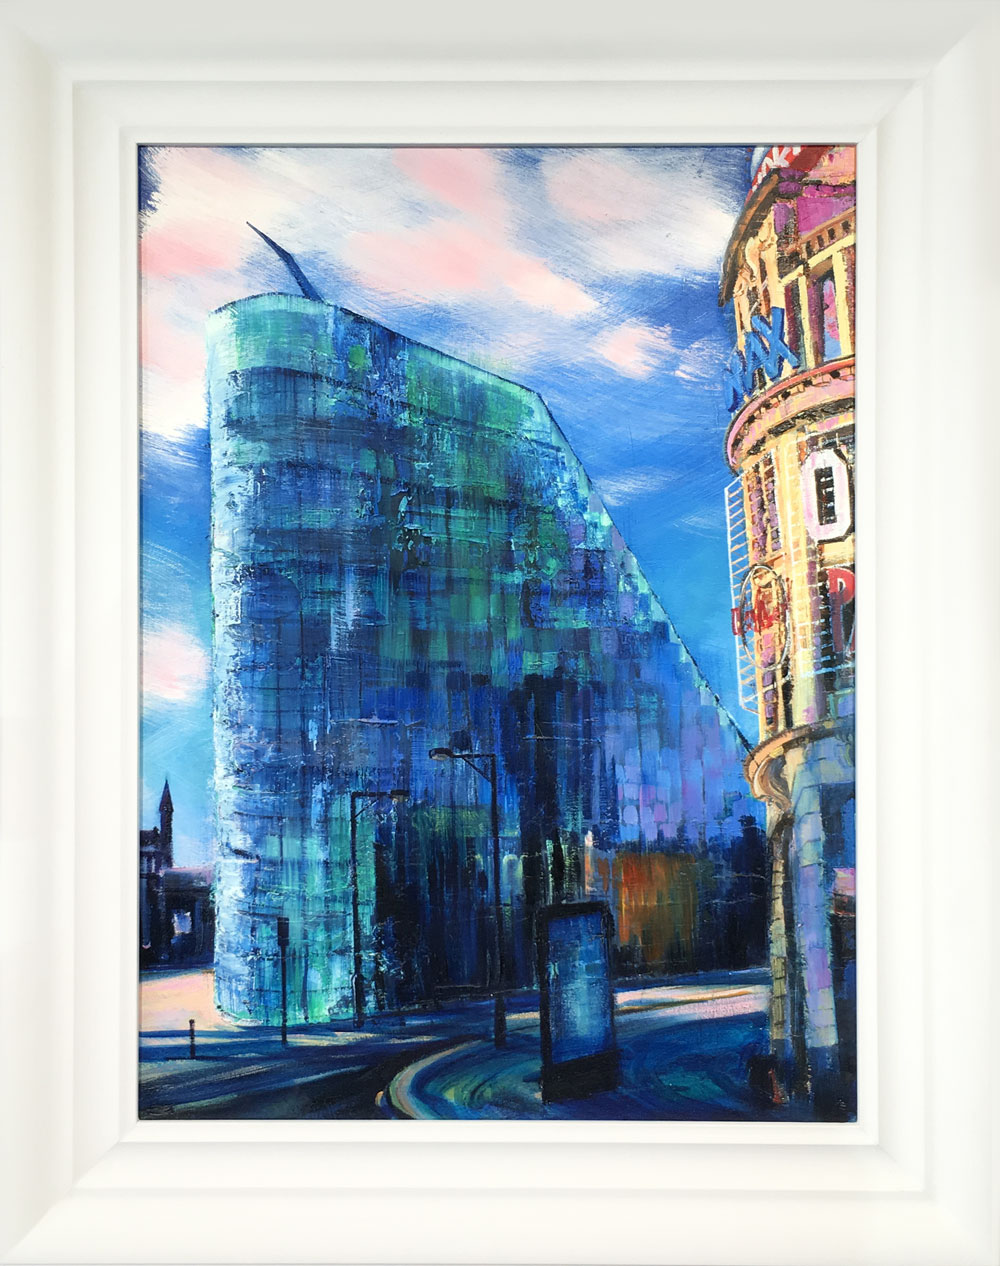 Hugh Winterbottom Original Painting of Urbis